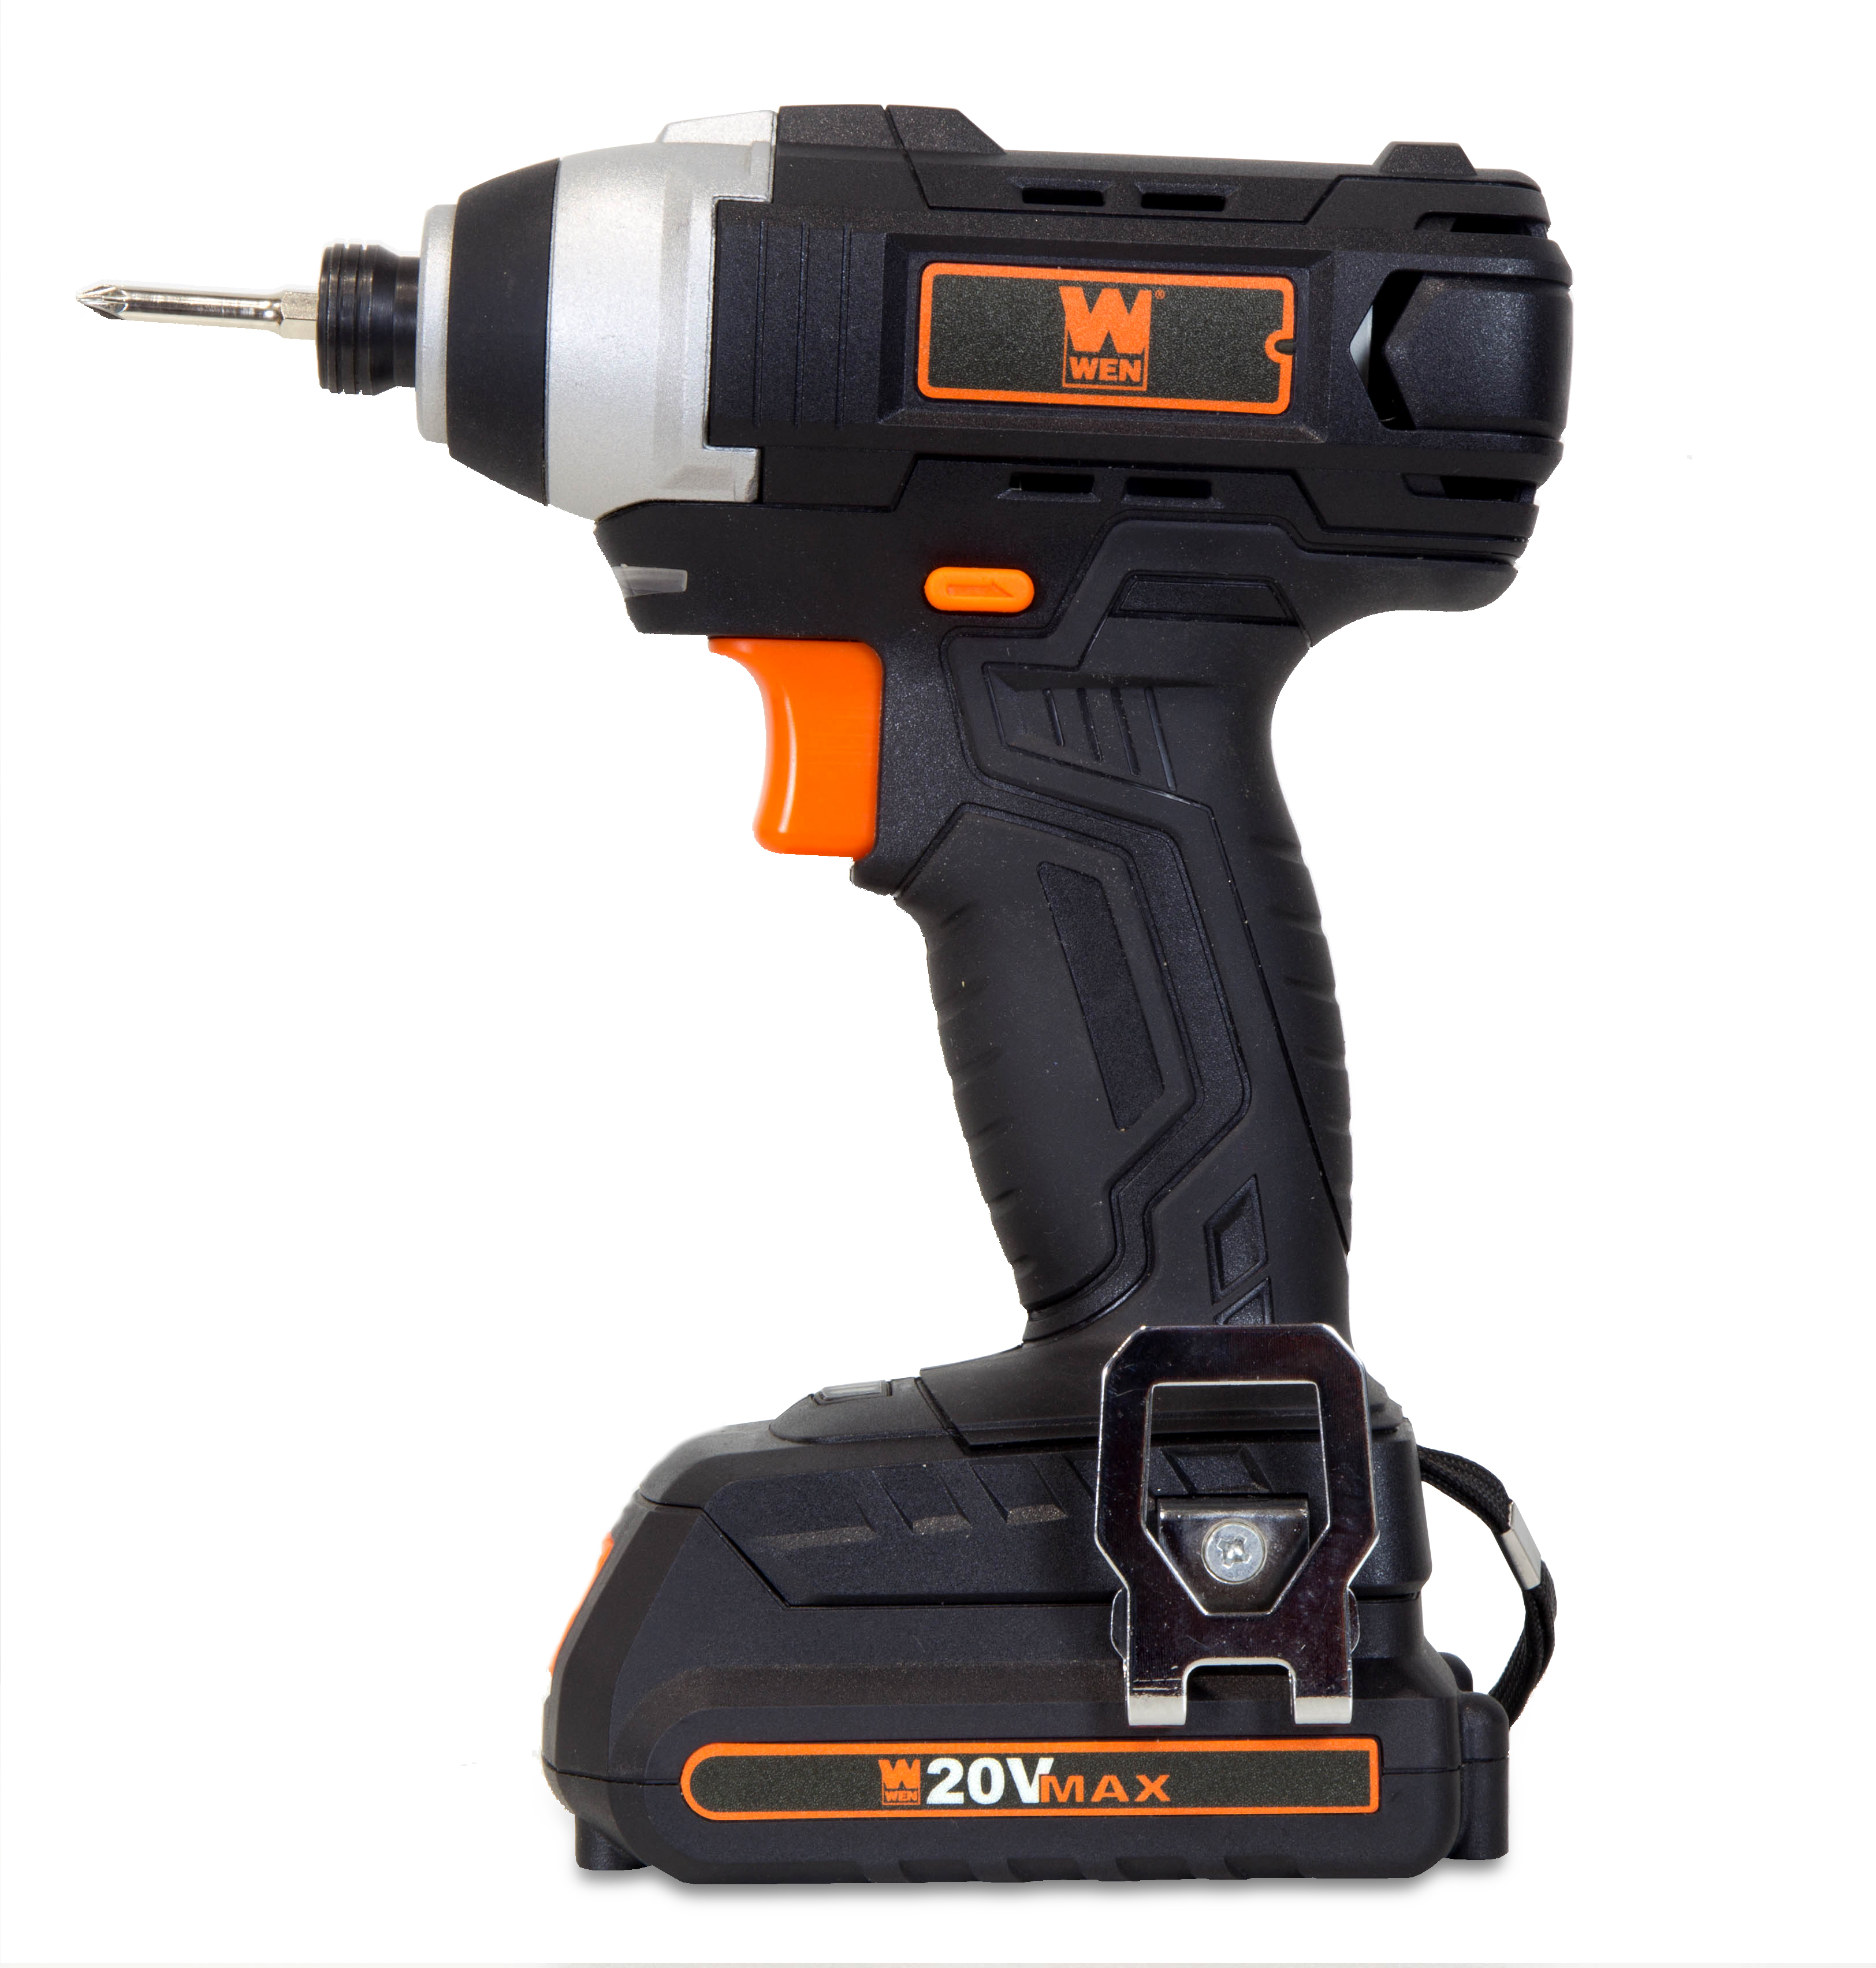 WEN 20-Volt MAX Lithium-Ion Cordless 1/4-Inch Impact Driver w/ Battery, Bits, Charger and Carrying Bag